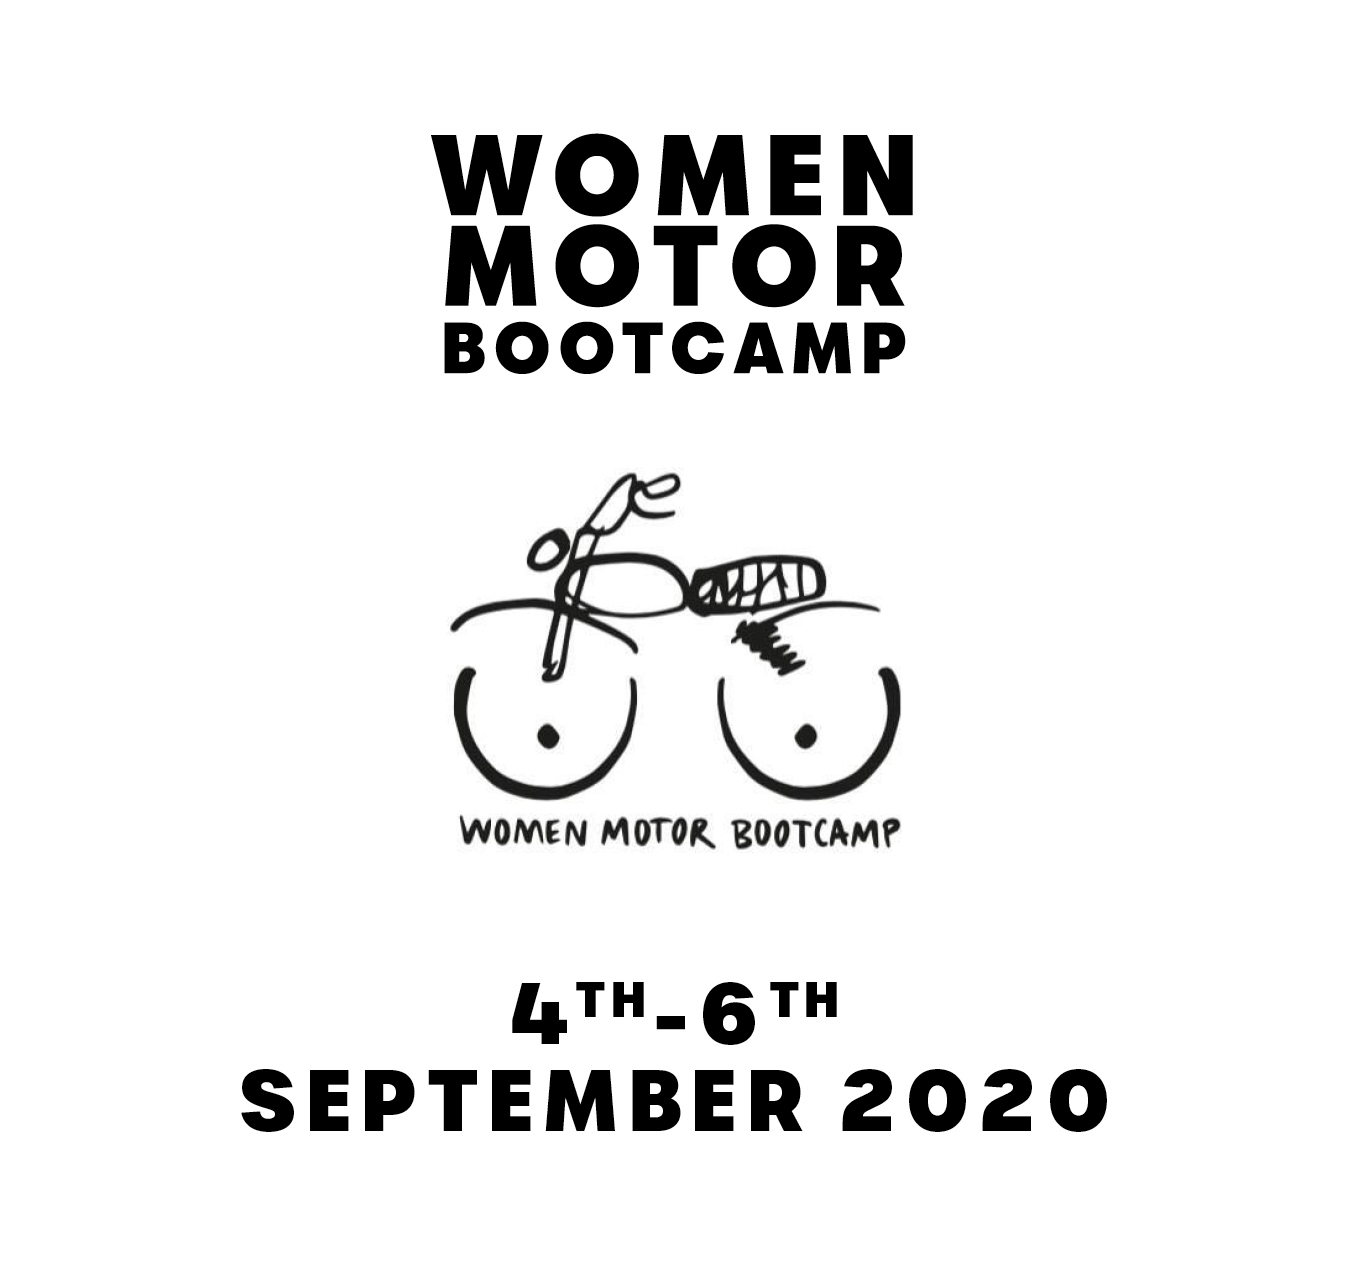 WMBootcamp 2020: famous endorsers and Stylmartin motorcycle boots